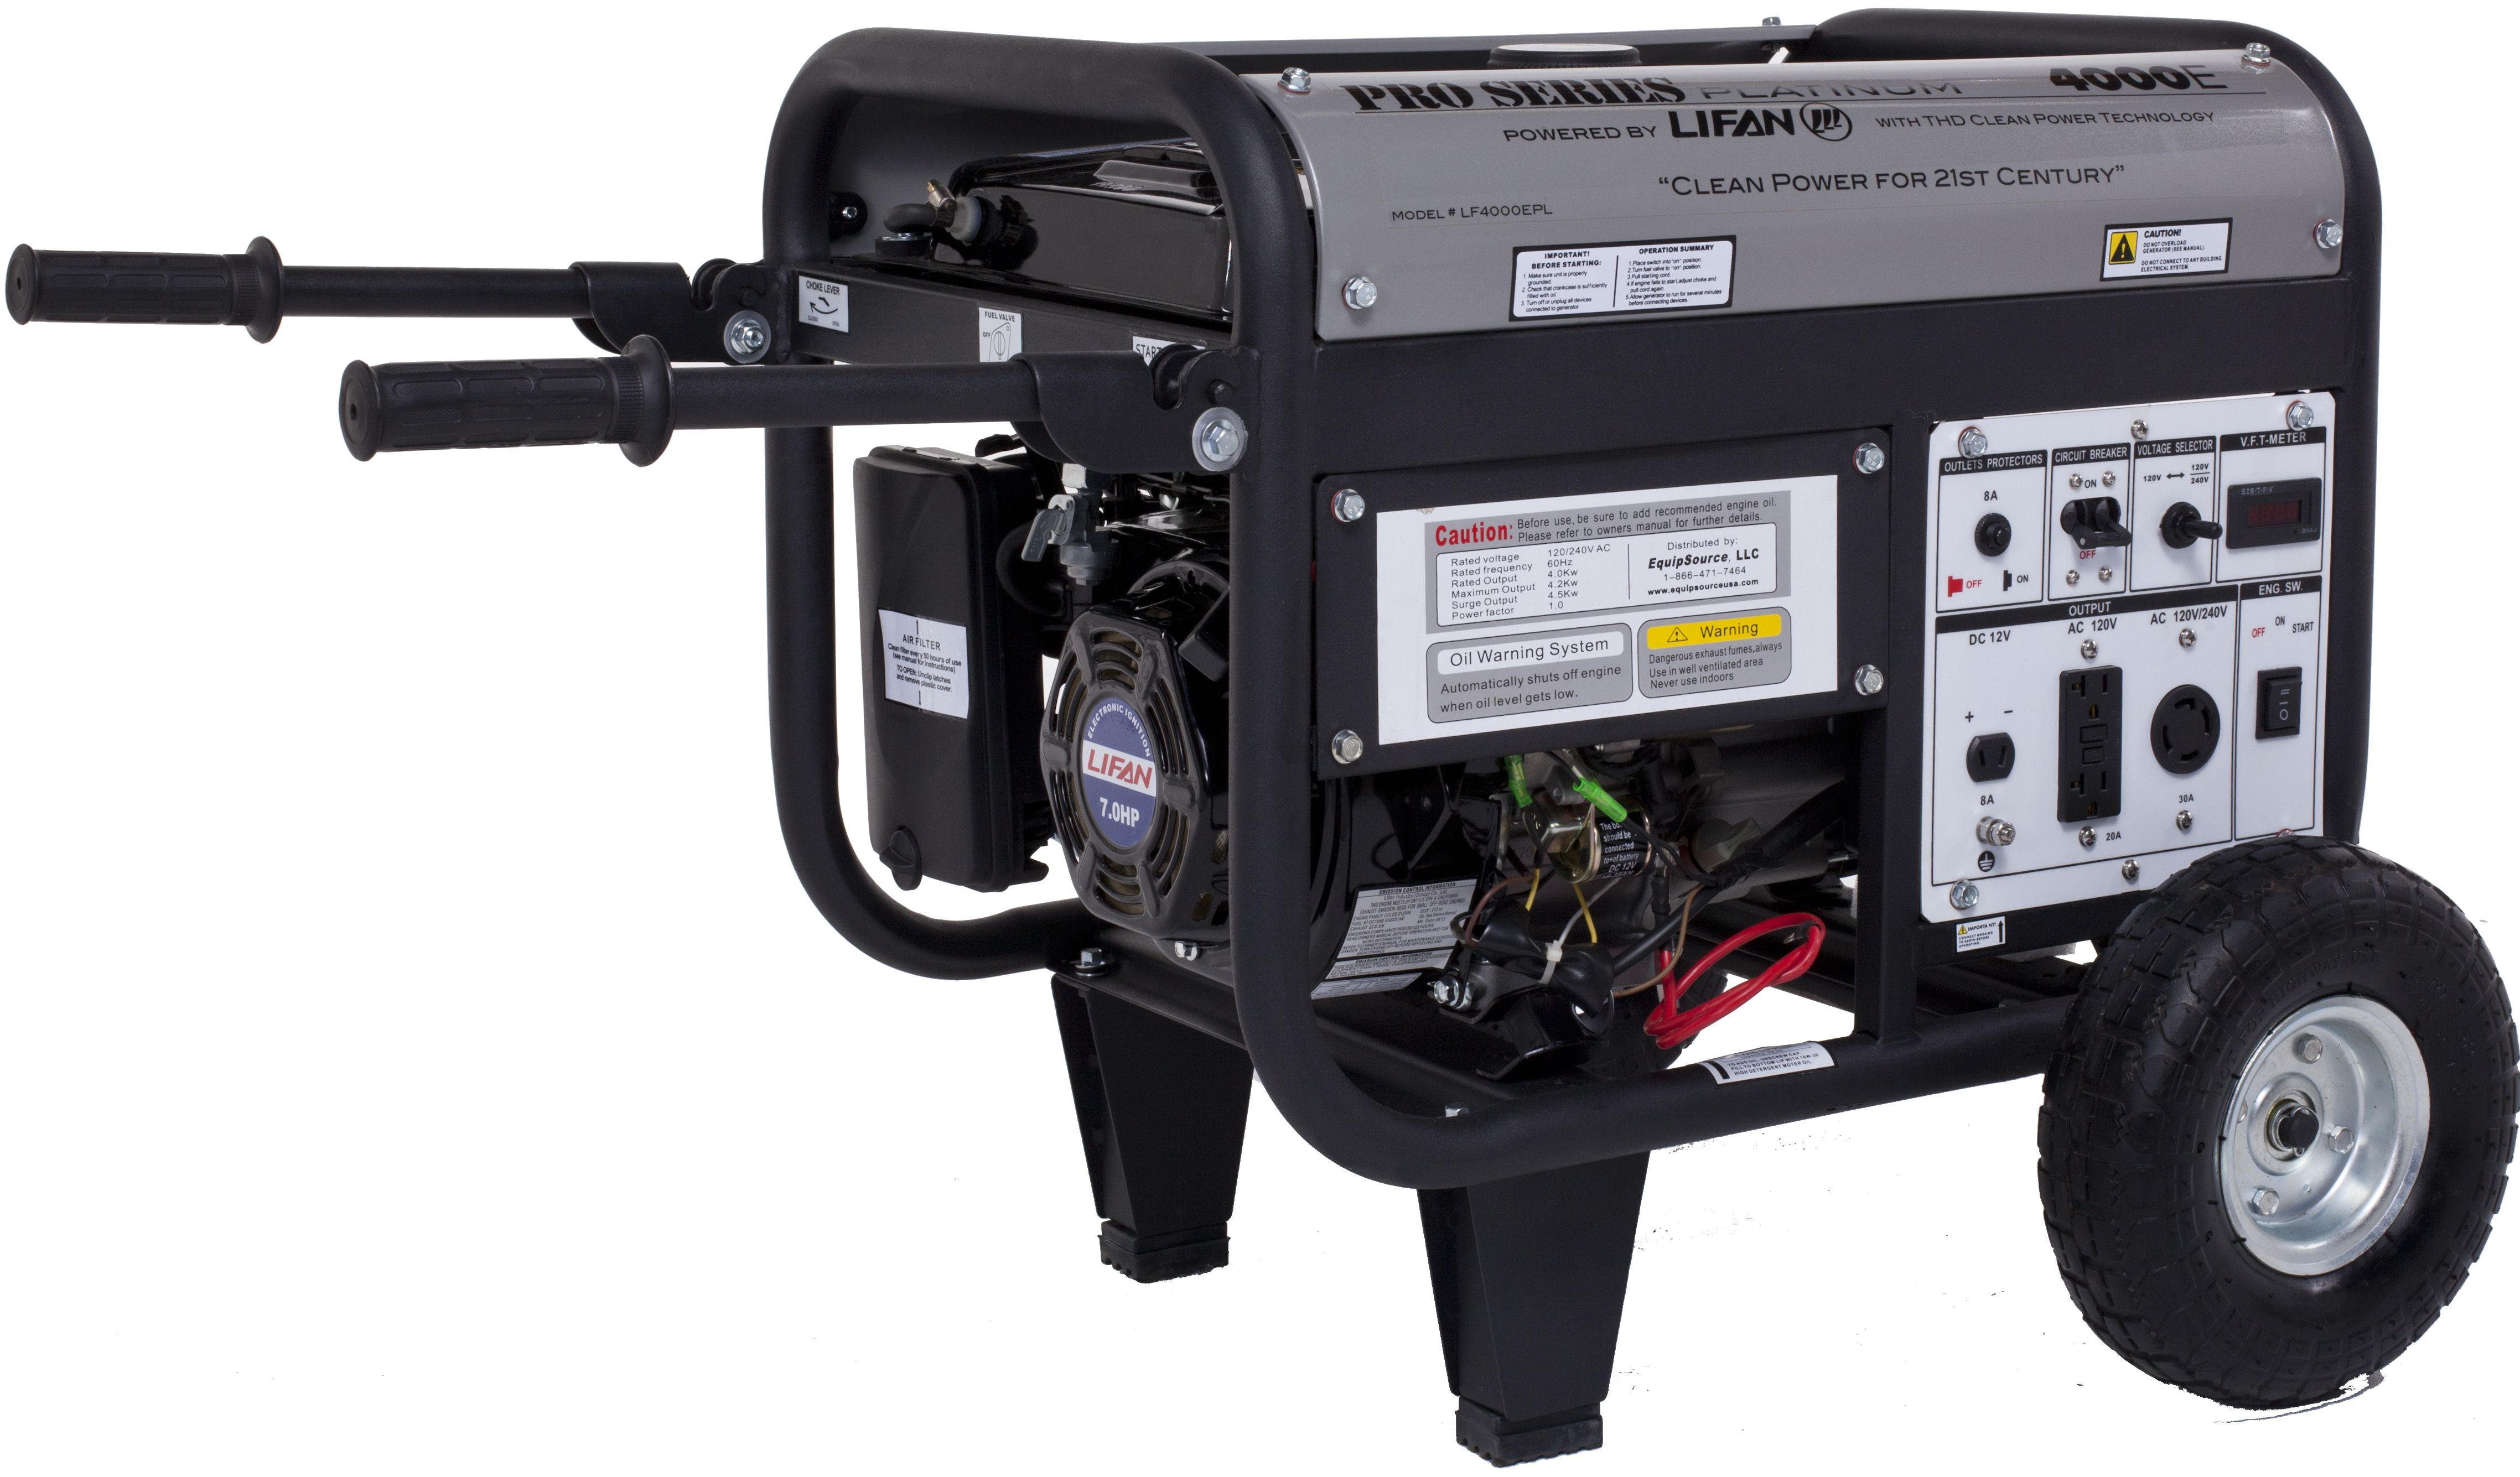 Wiring A Portable Generator To Home as well Chicago Electric Wire Feed Welder Mig Page in addition Sindelartinyskiz in addition Battery Charger Circuit besides Engineering Electrical Design Elements Terminals And Connectors. on portable electric generator diagrams